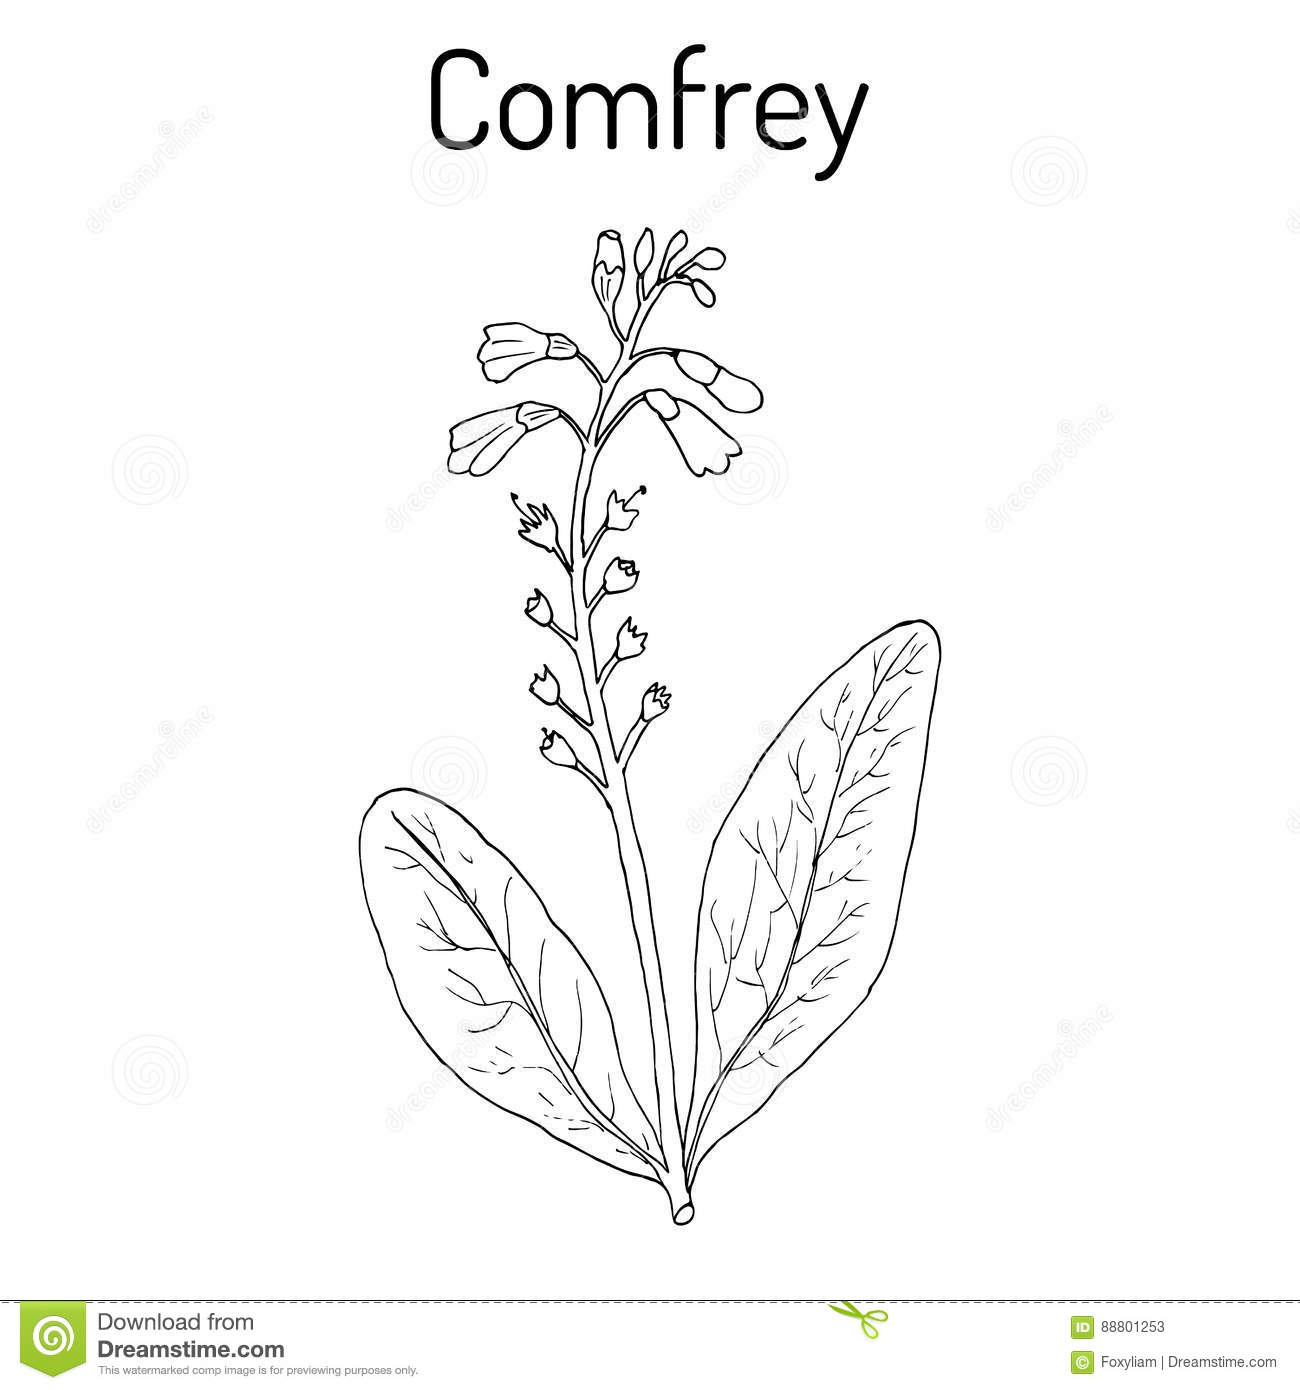 comfrey dating Comforting definition, affording comfort or solace see more.